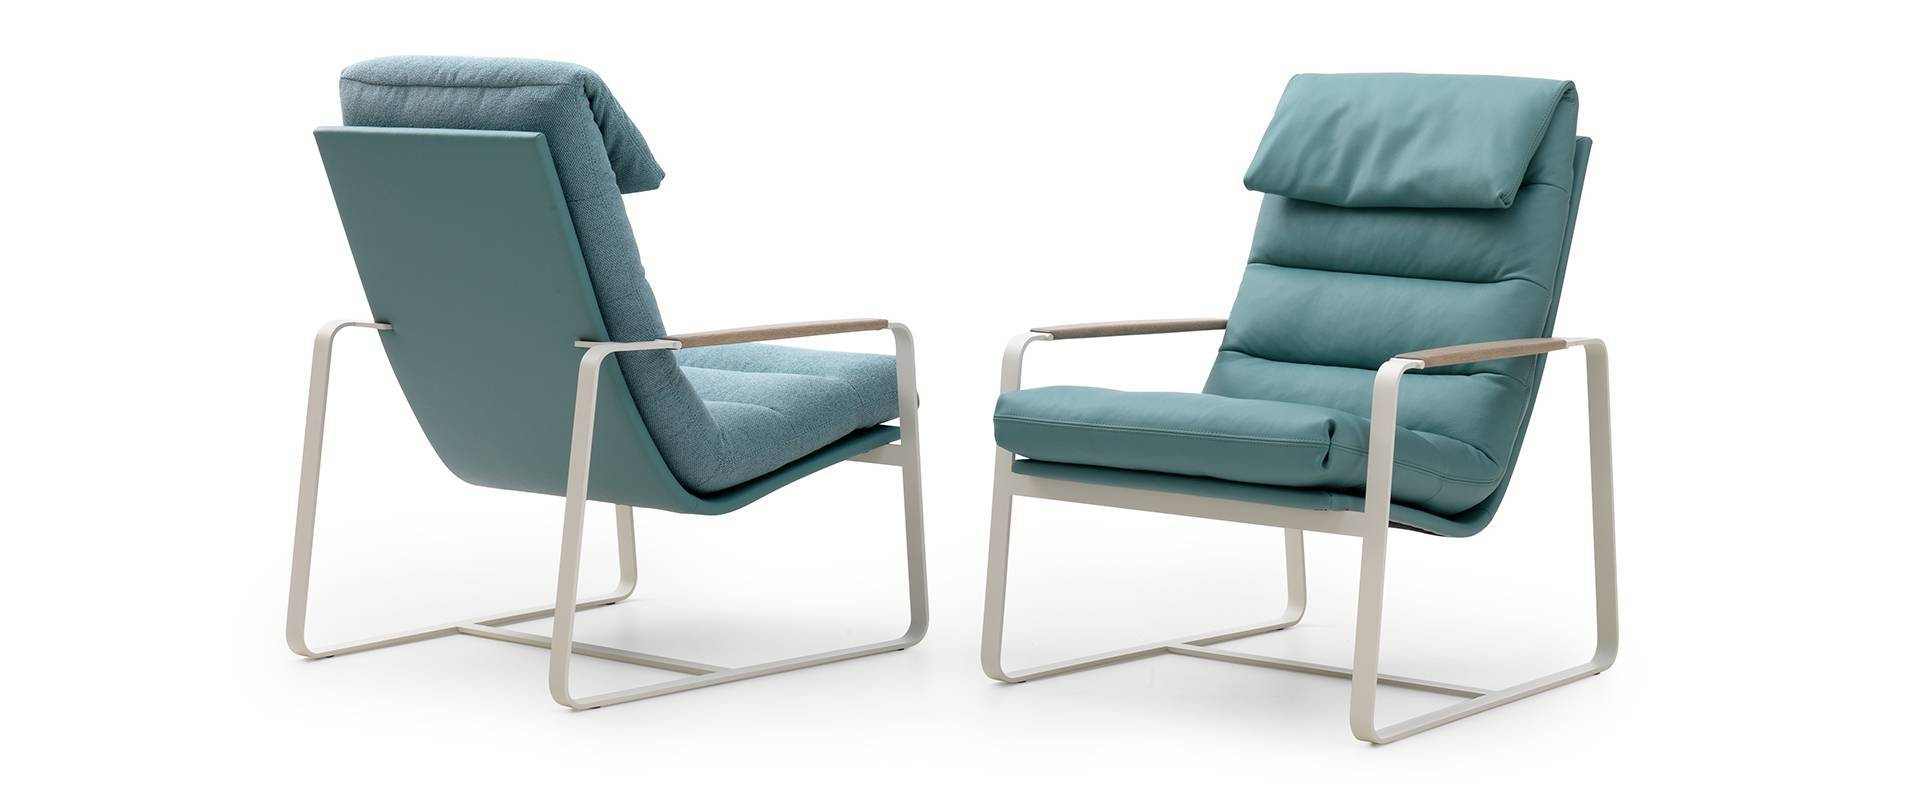 design armchair indra by leolux